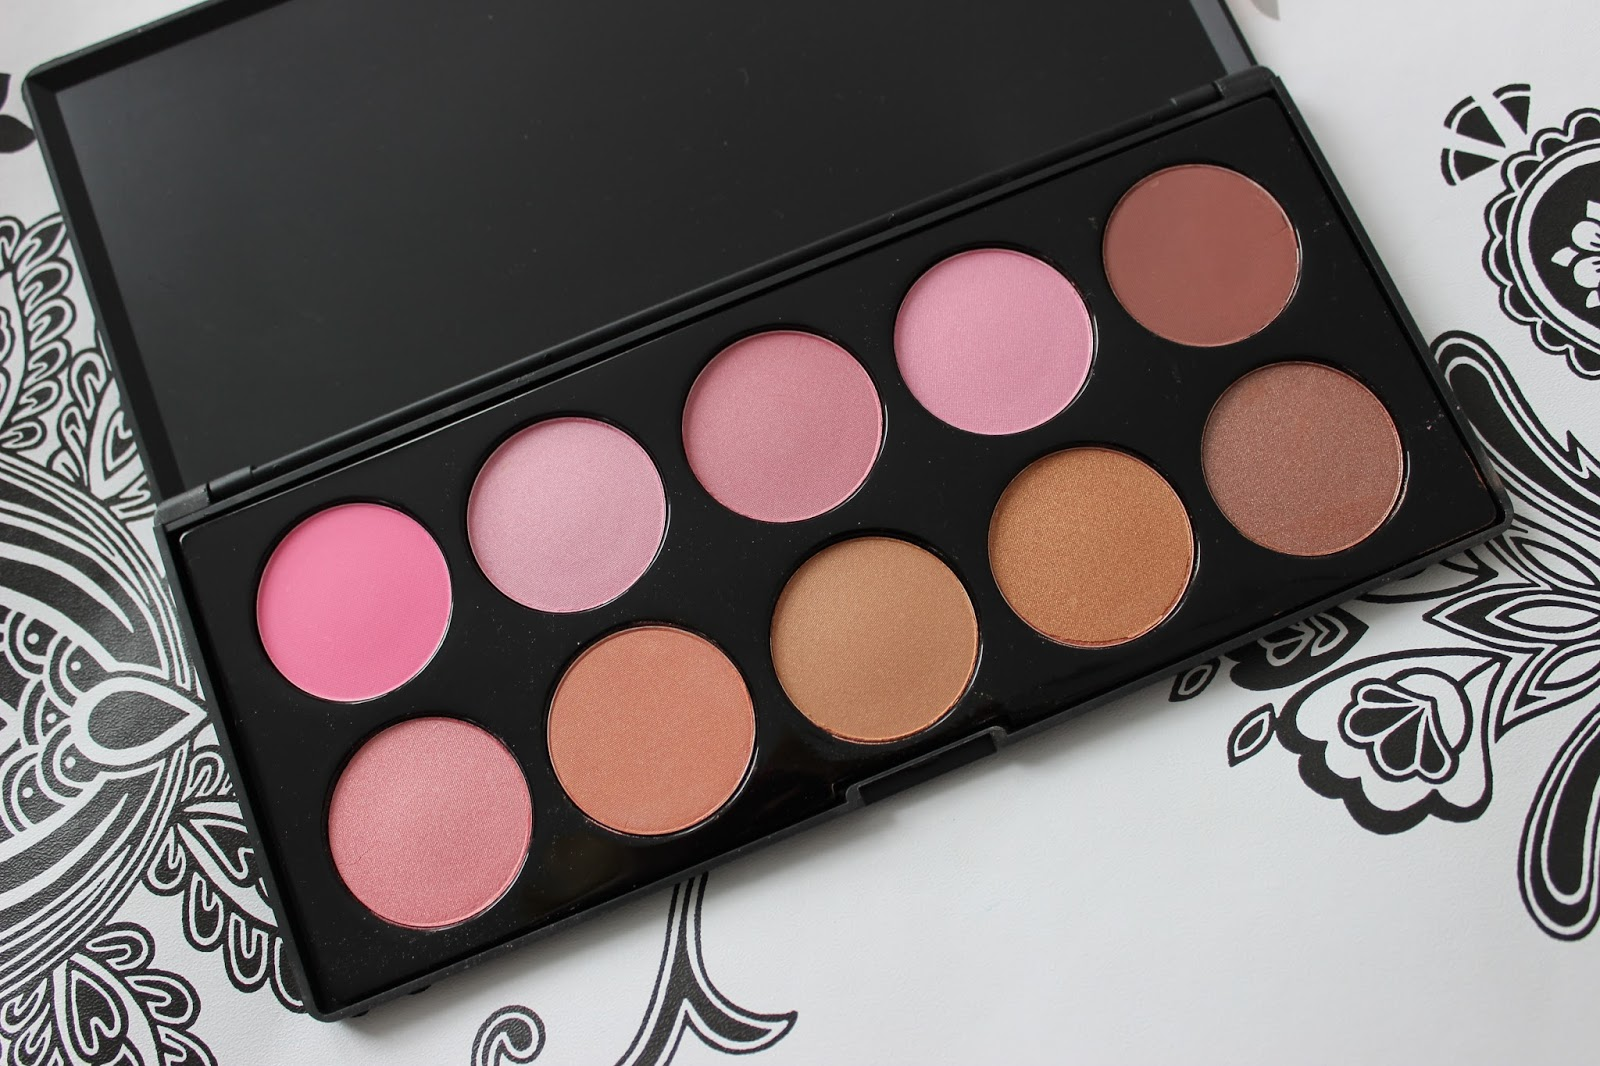 Crownbrush 10 colour blusher palette